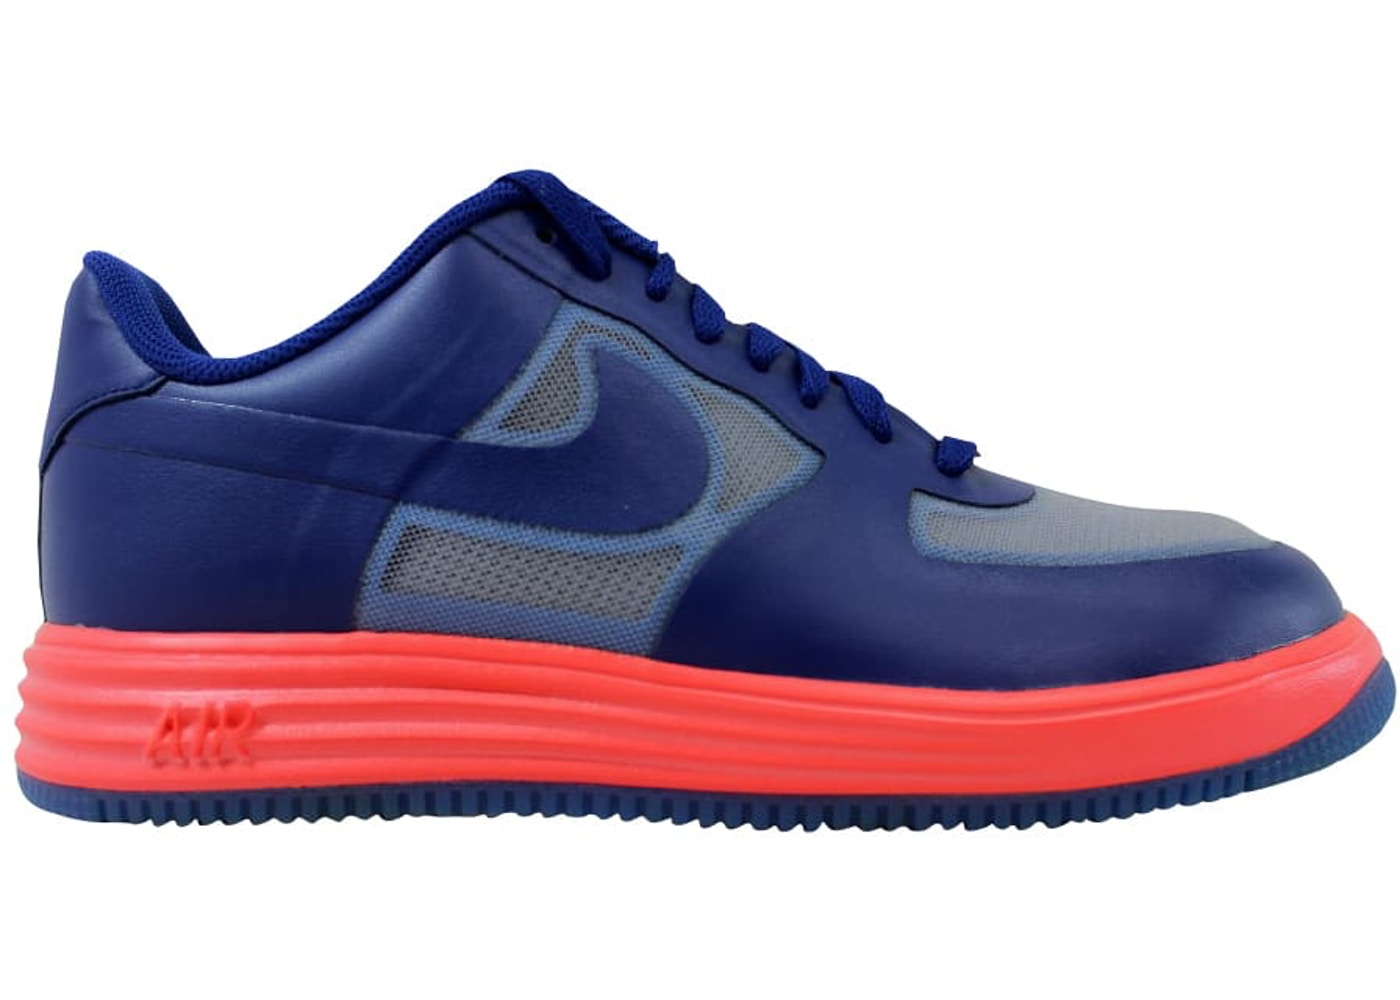 check out 0d337 3ee38 Nike Lunar Force 1 Fuse Lthr Royal Blue Neon Orange - 599839-001